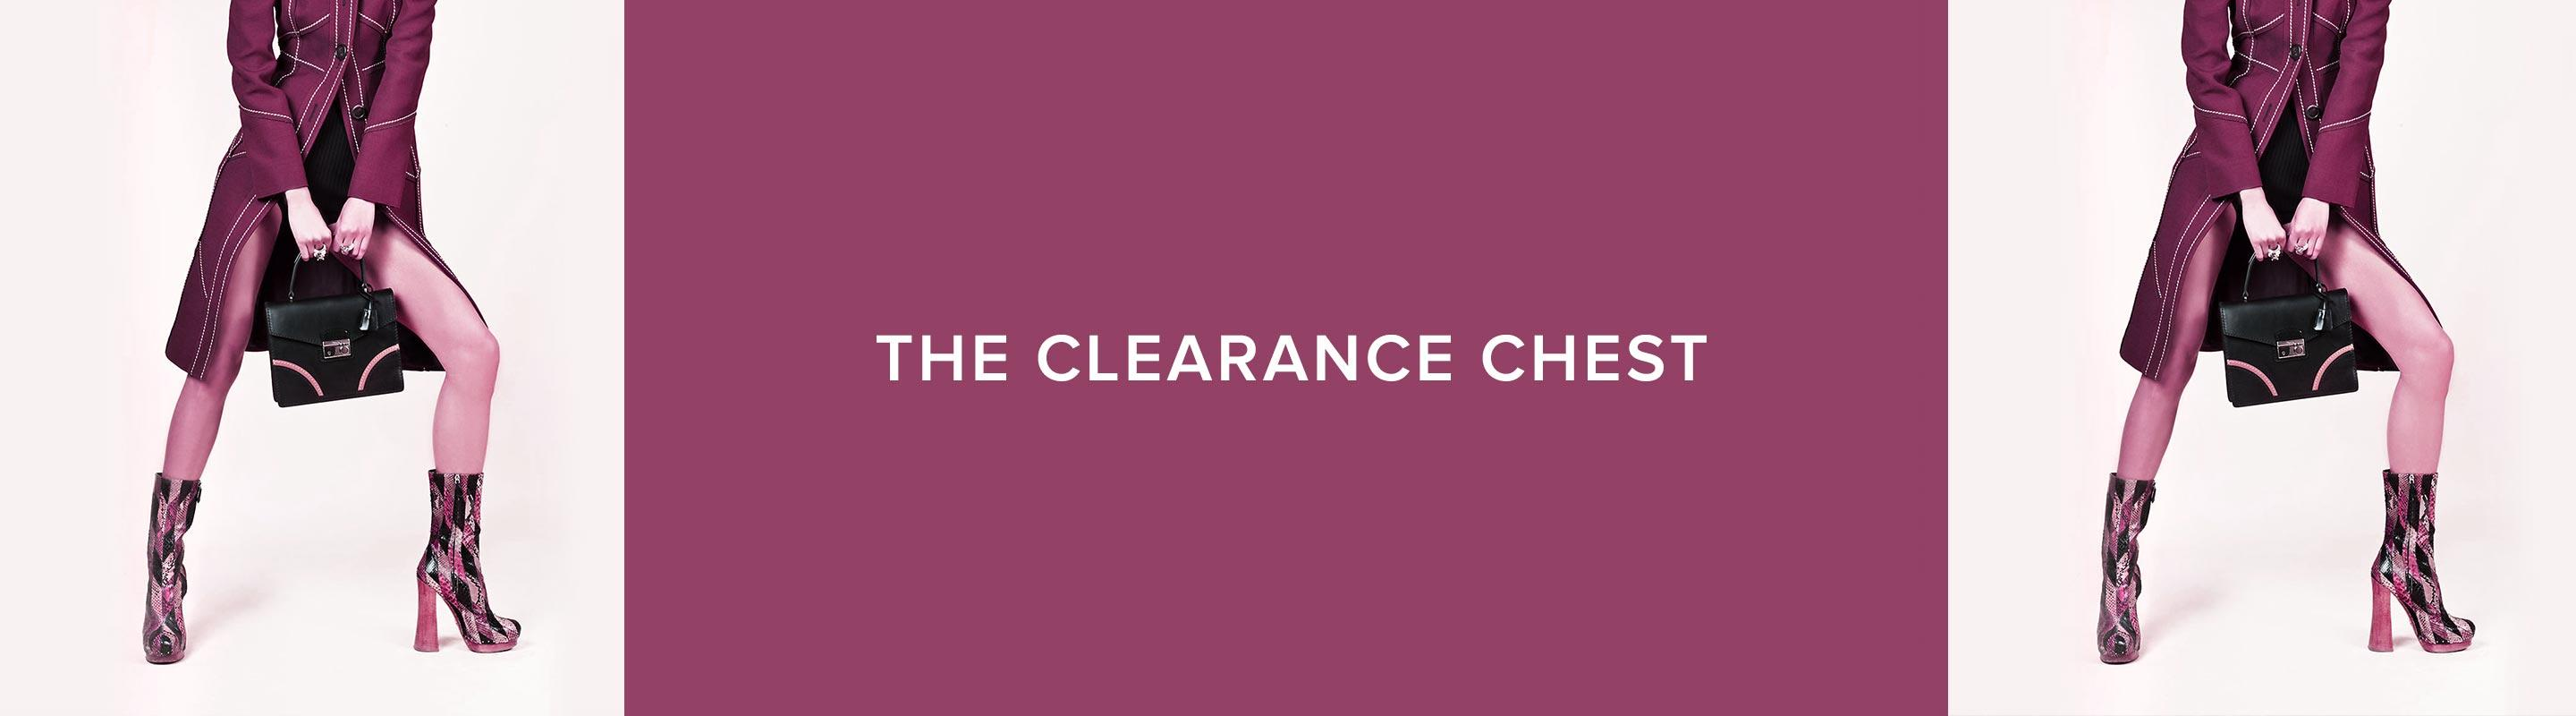 The Clearance Chest